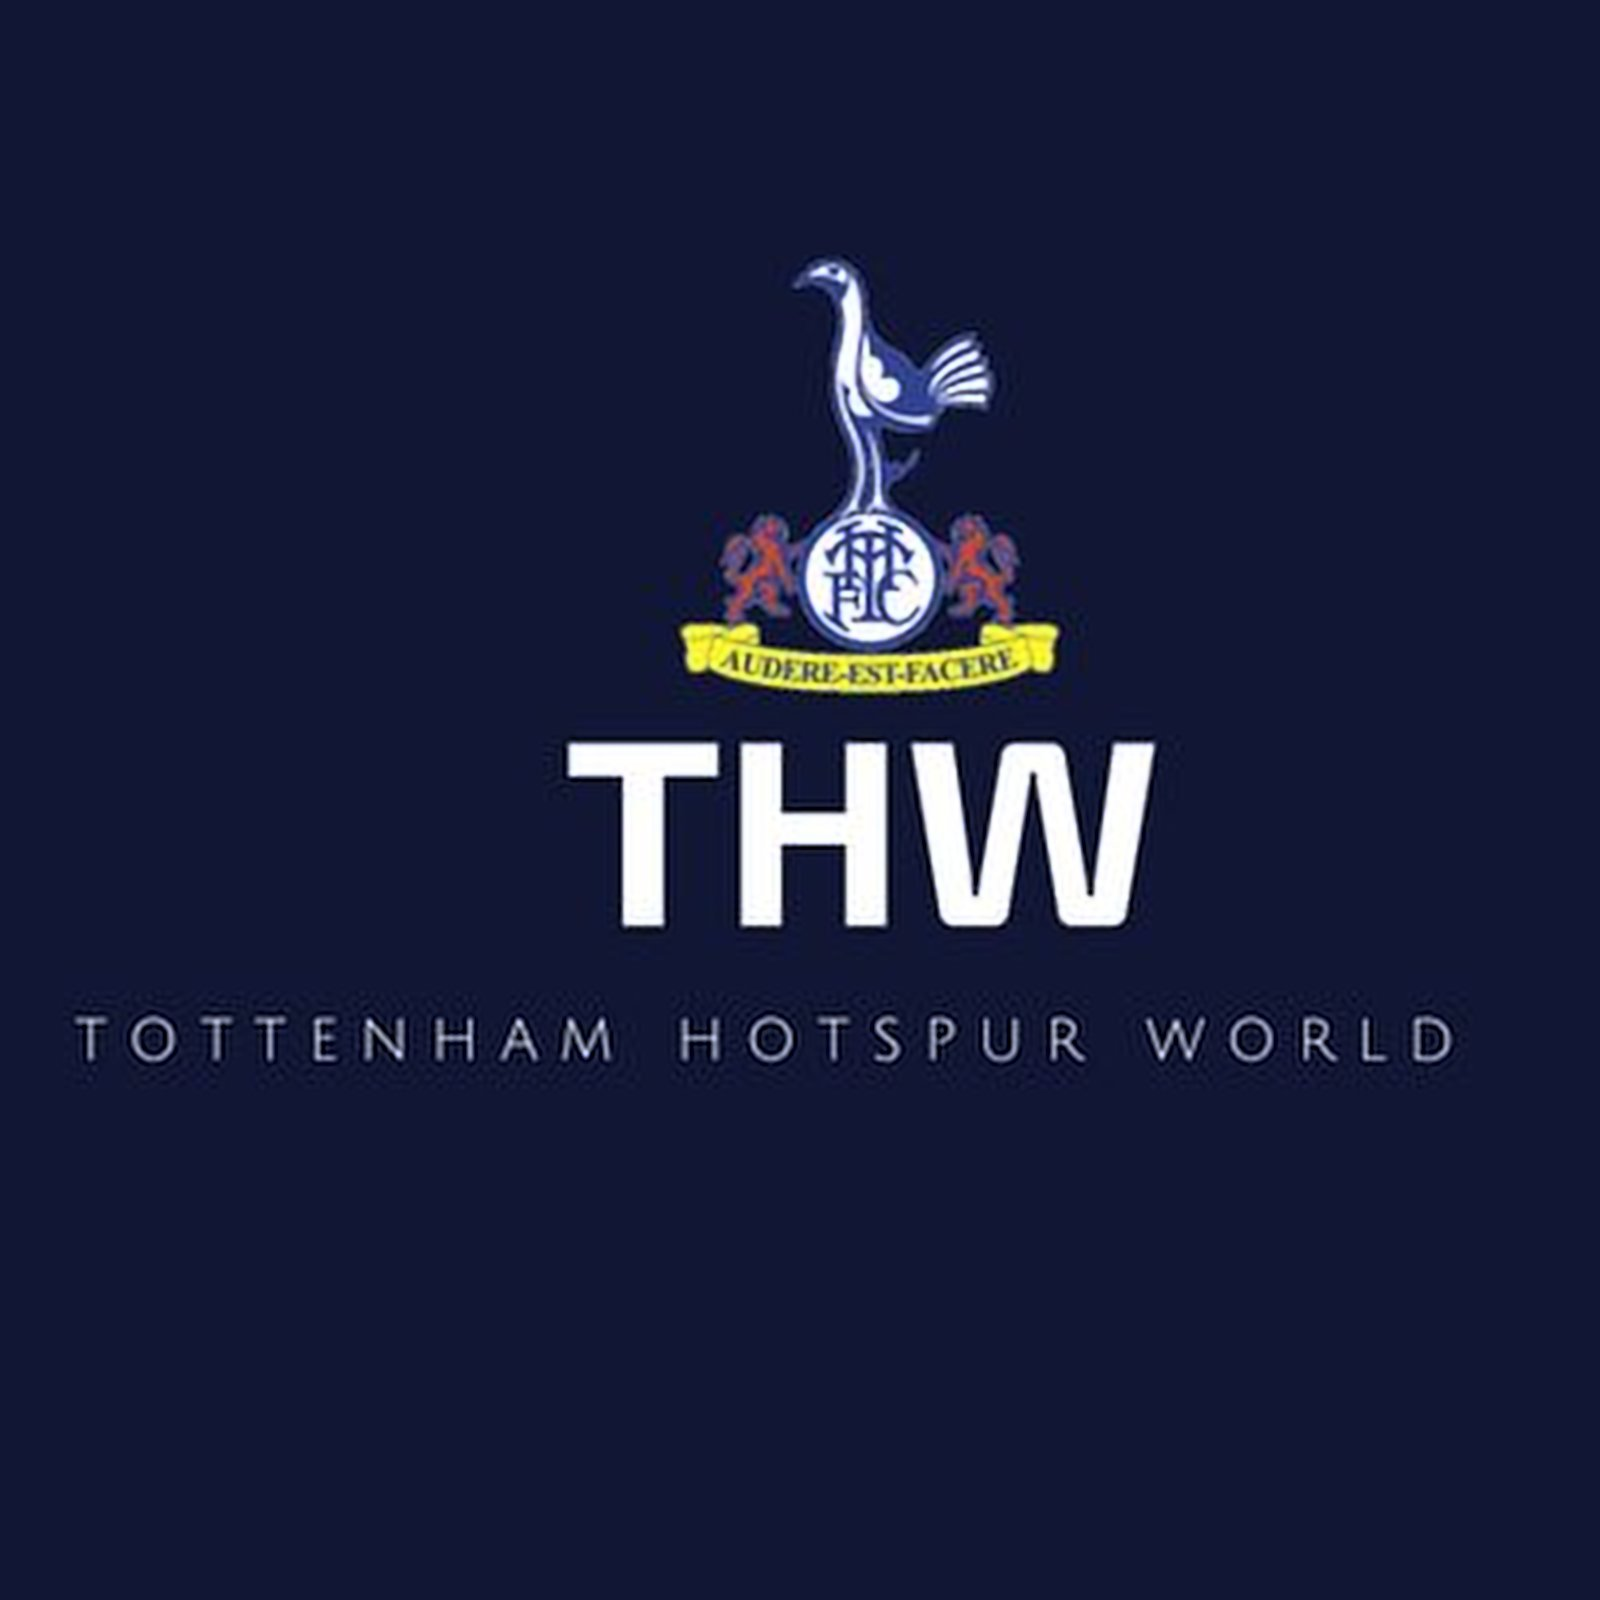 Tottenham Hotspur World